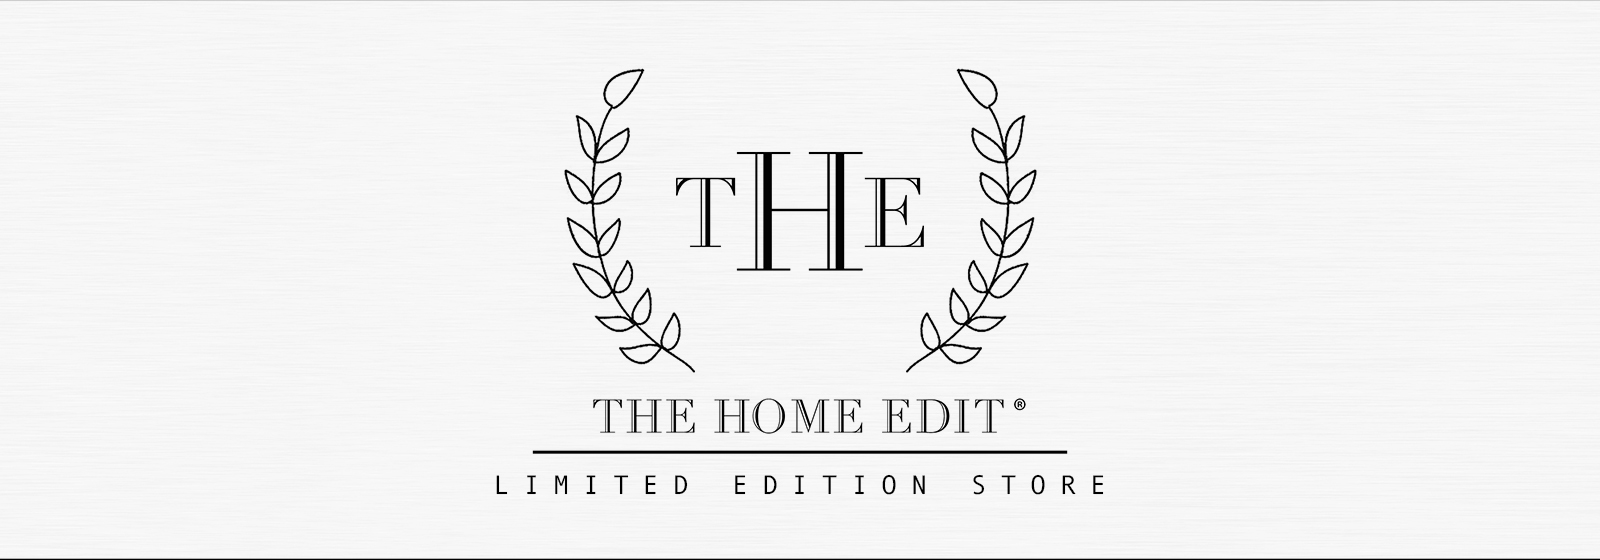 The Home Edit Store